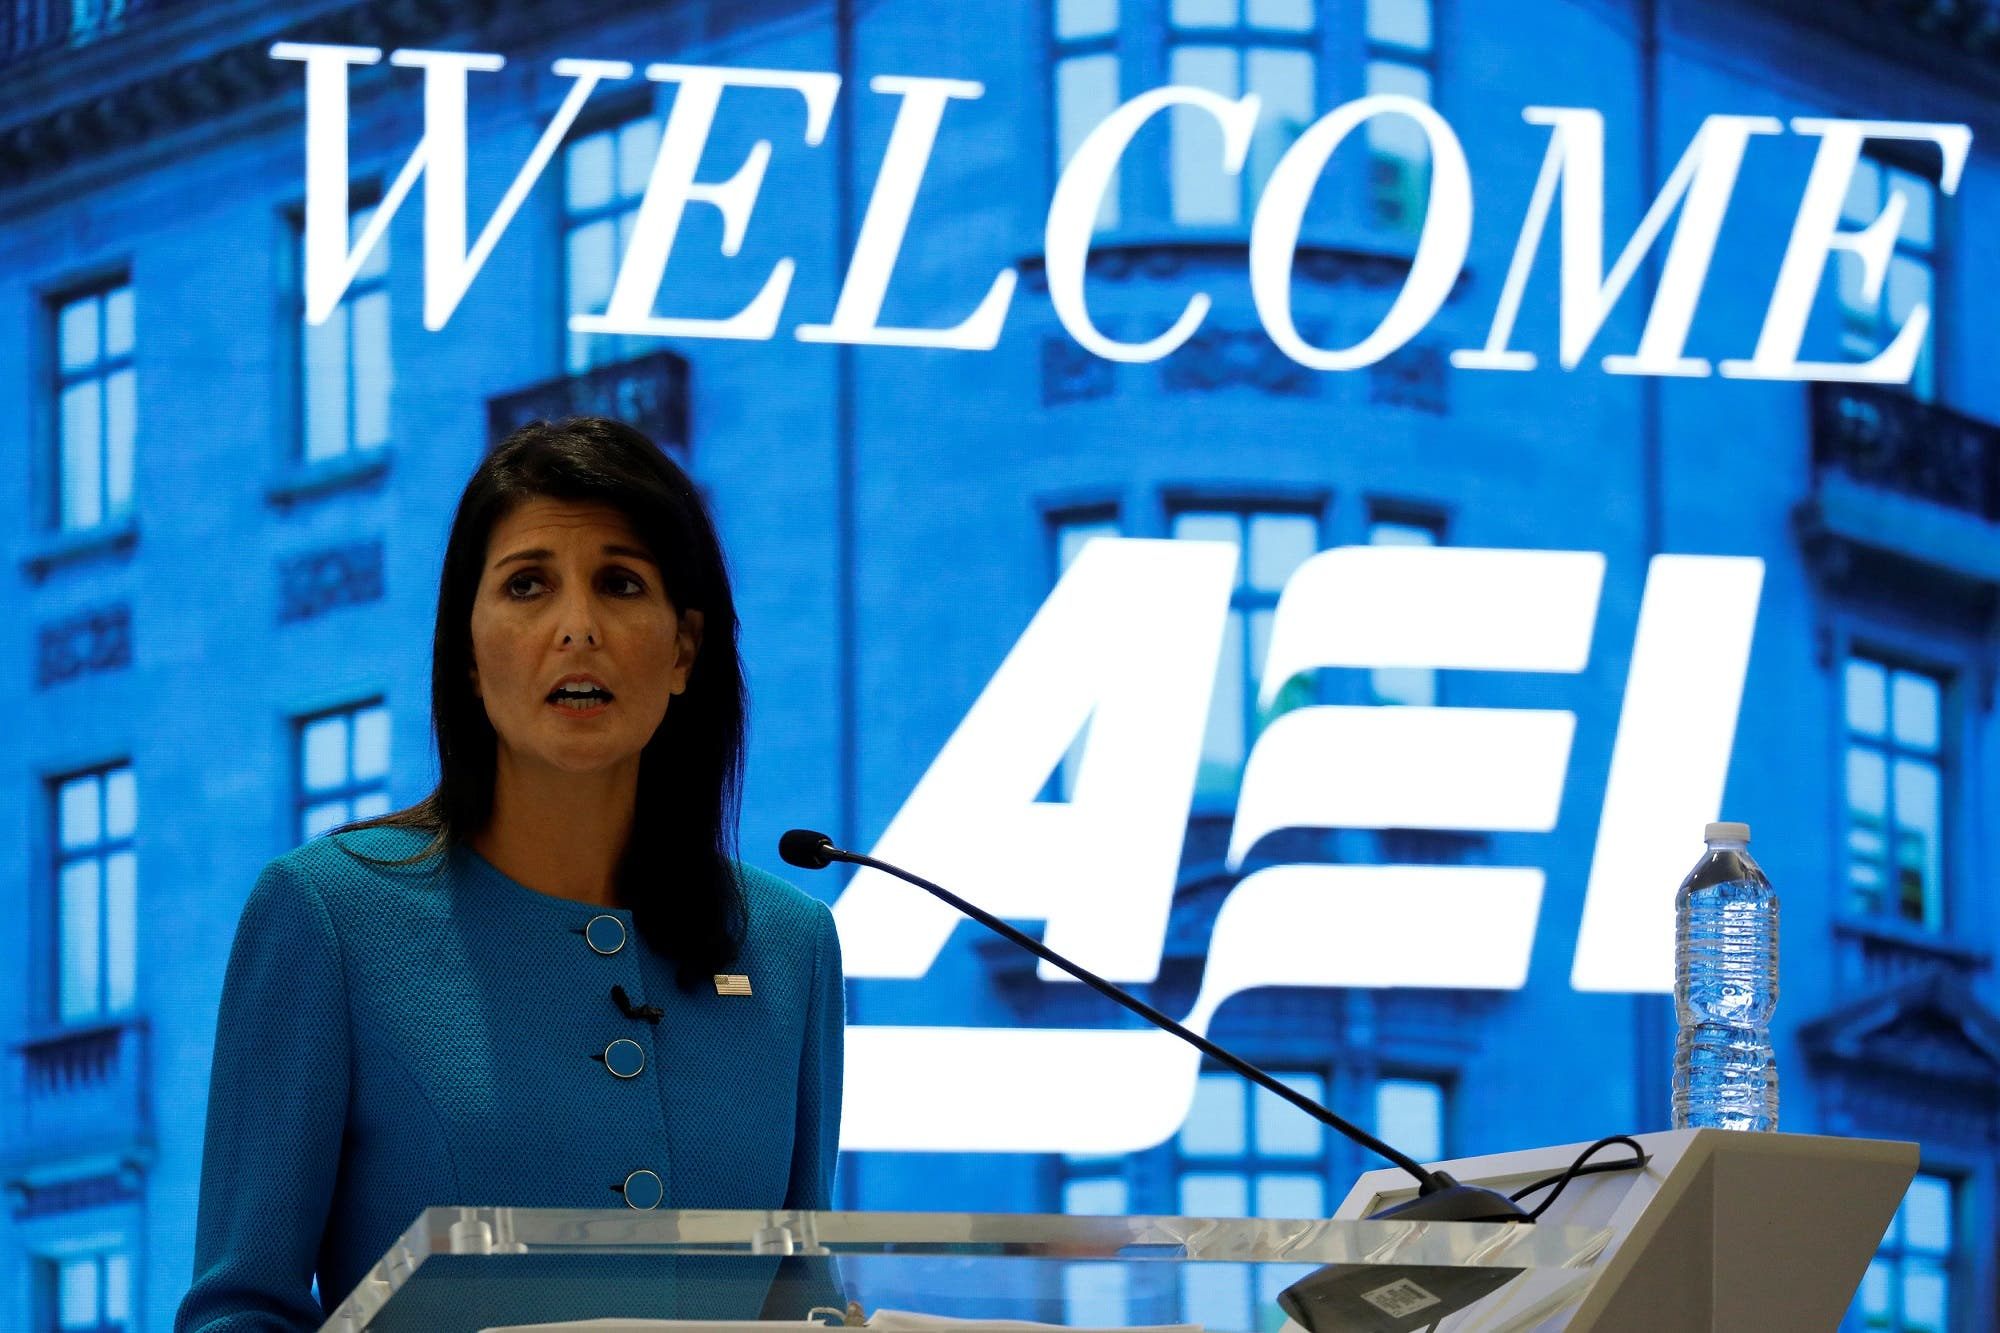 US Ambassador to the United Nations Nikki Haley speaks about the Iran nuclear deal at the American Enterprise Institute in Washington, on September 5, 2017. (Reuters)